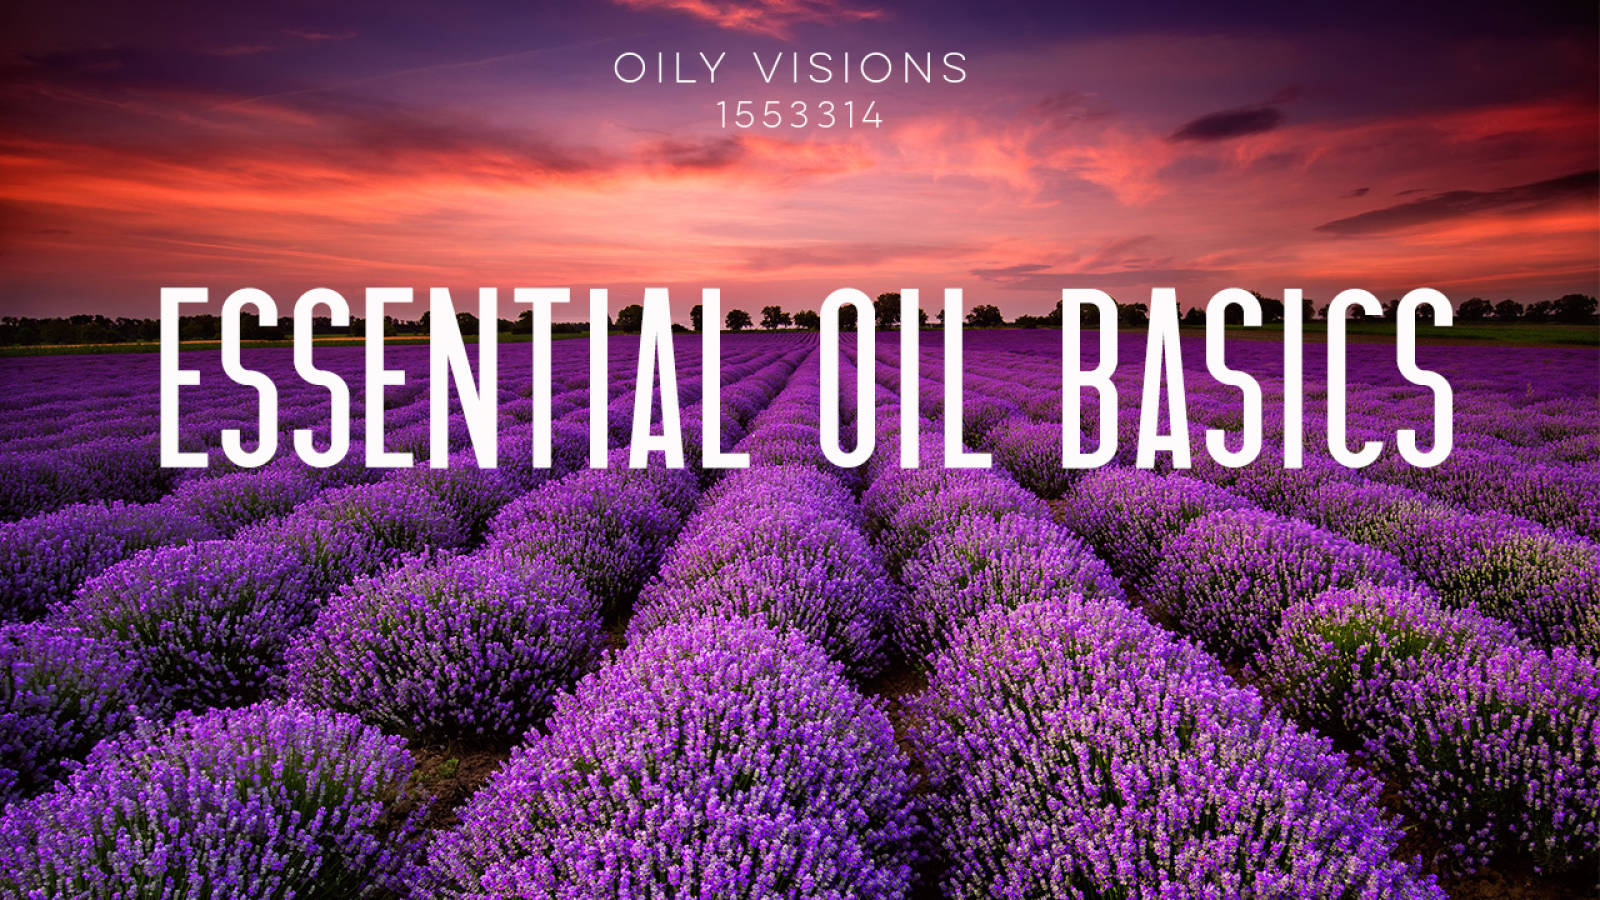 Essential Oils - Basic 101